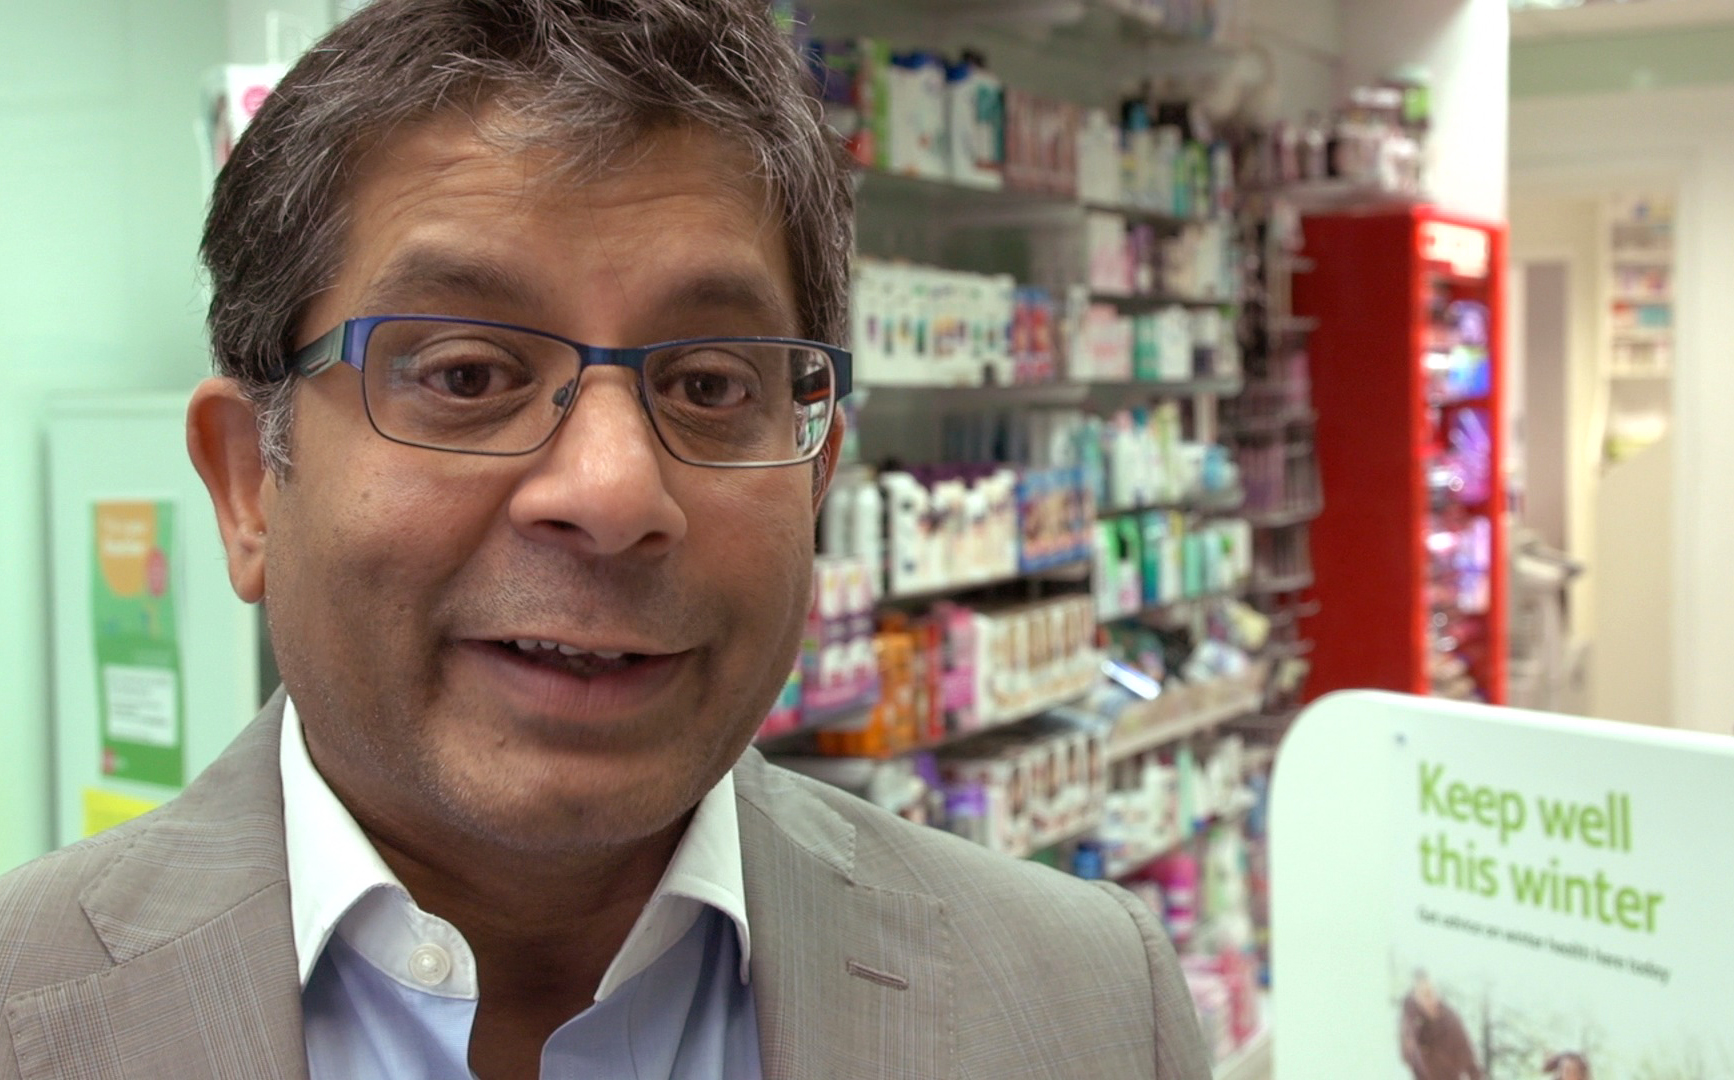 Eligible for the free flu jab? It's as easy as A, B, Pharmacy